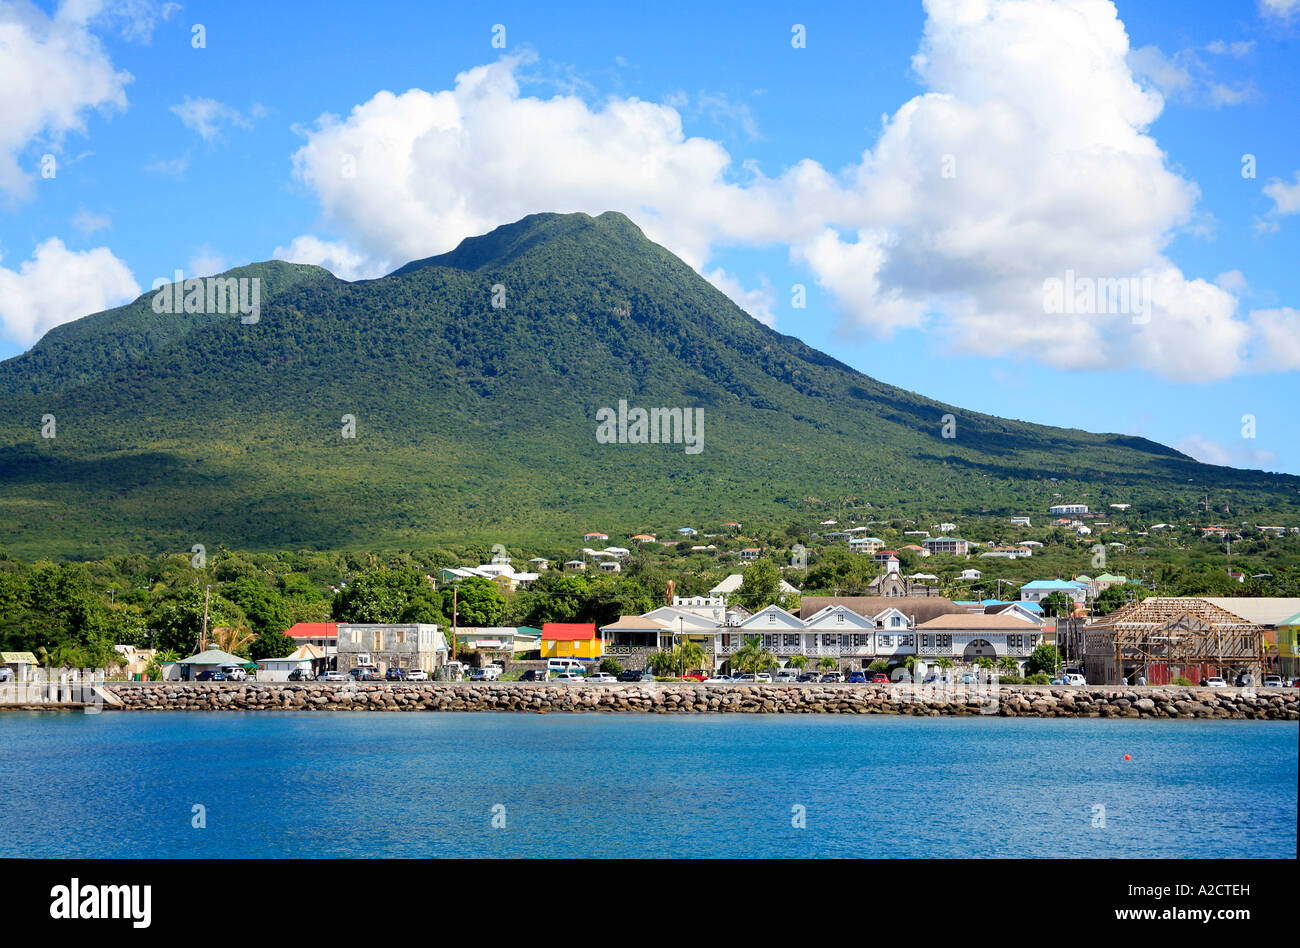 town of charlestown at nevis in the caribbean stock photo: 10482472